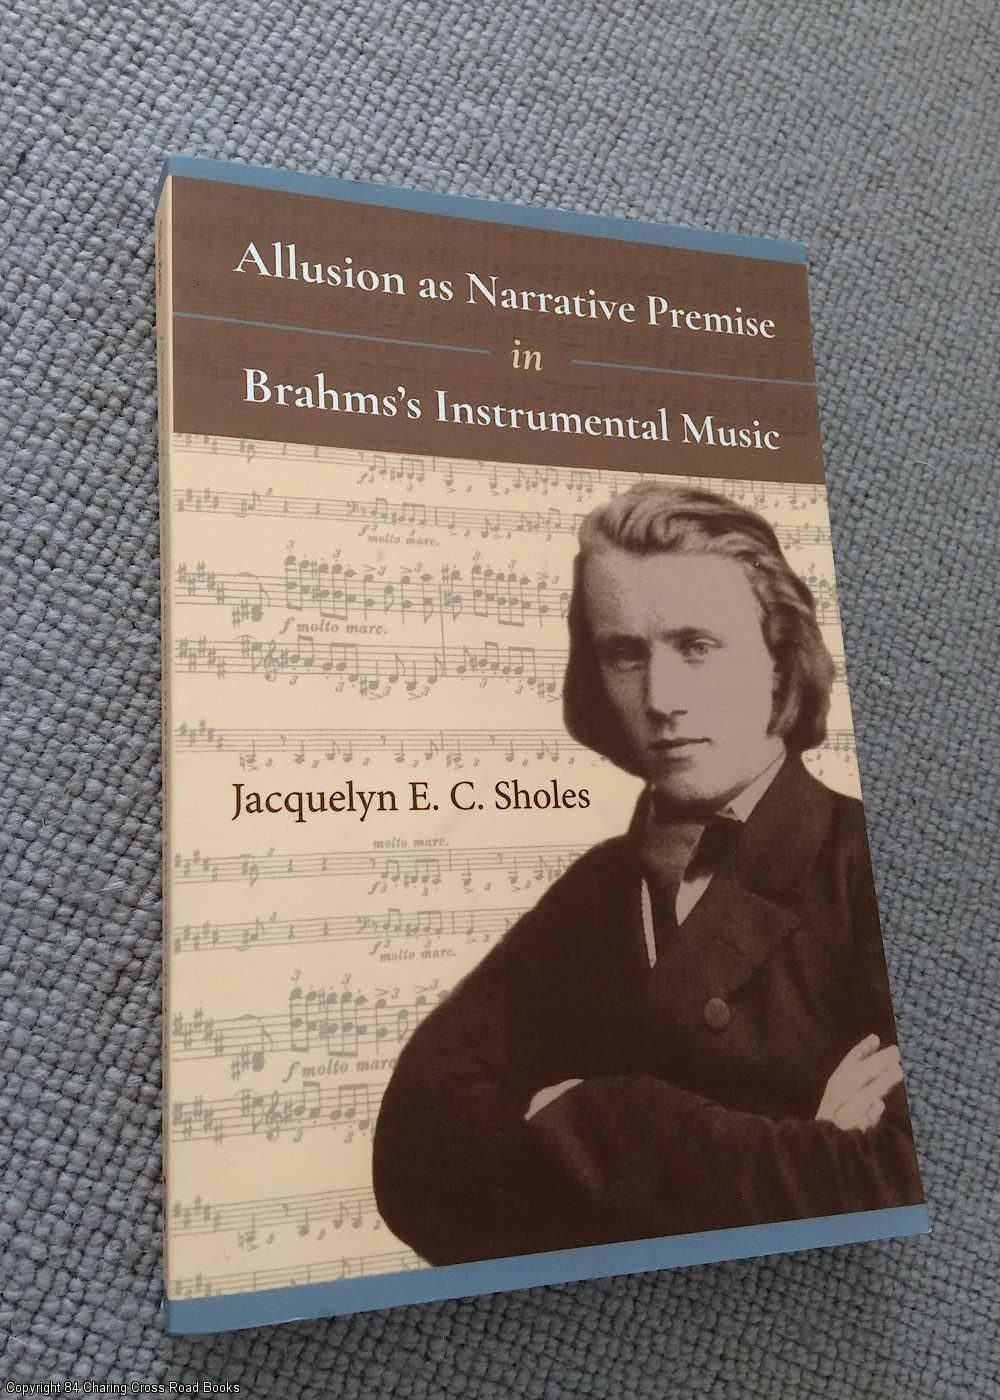 SHOLES, JACQUELYN - Allusion as Narrative Premise in Brahms's Instrumental Music